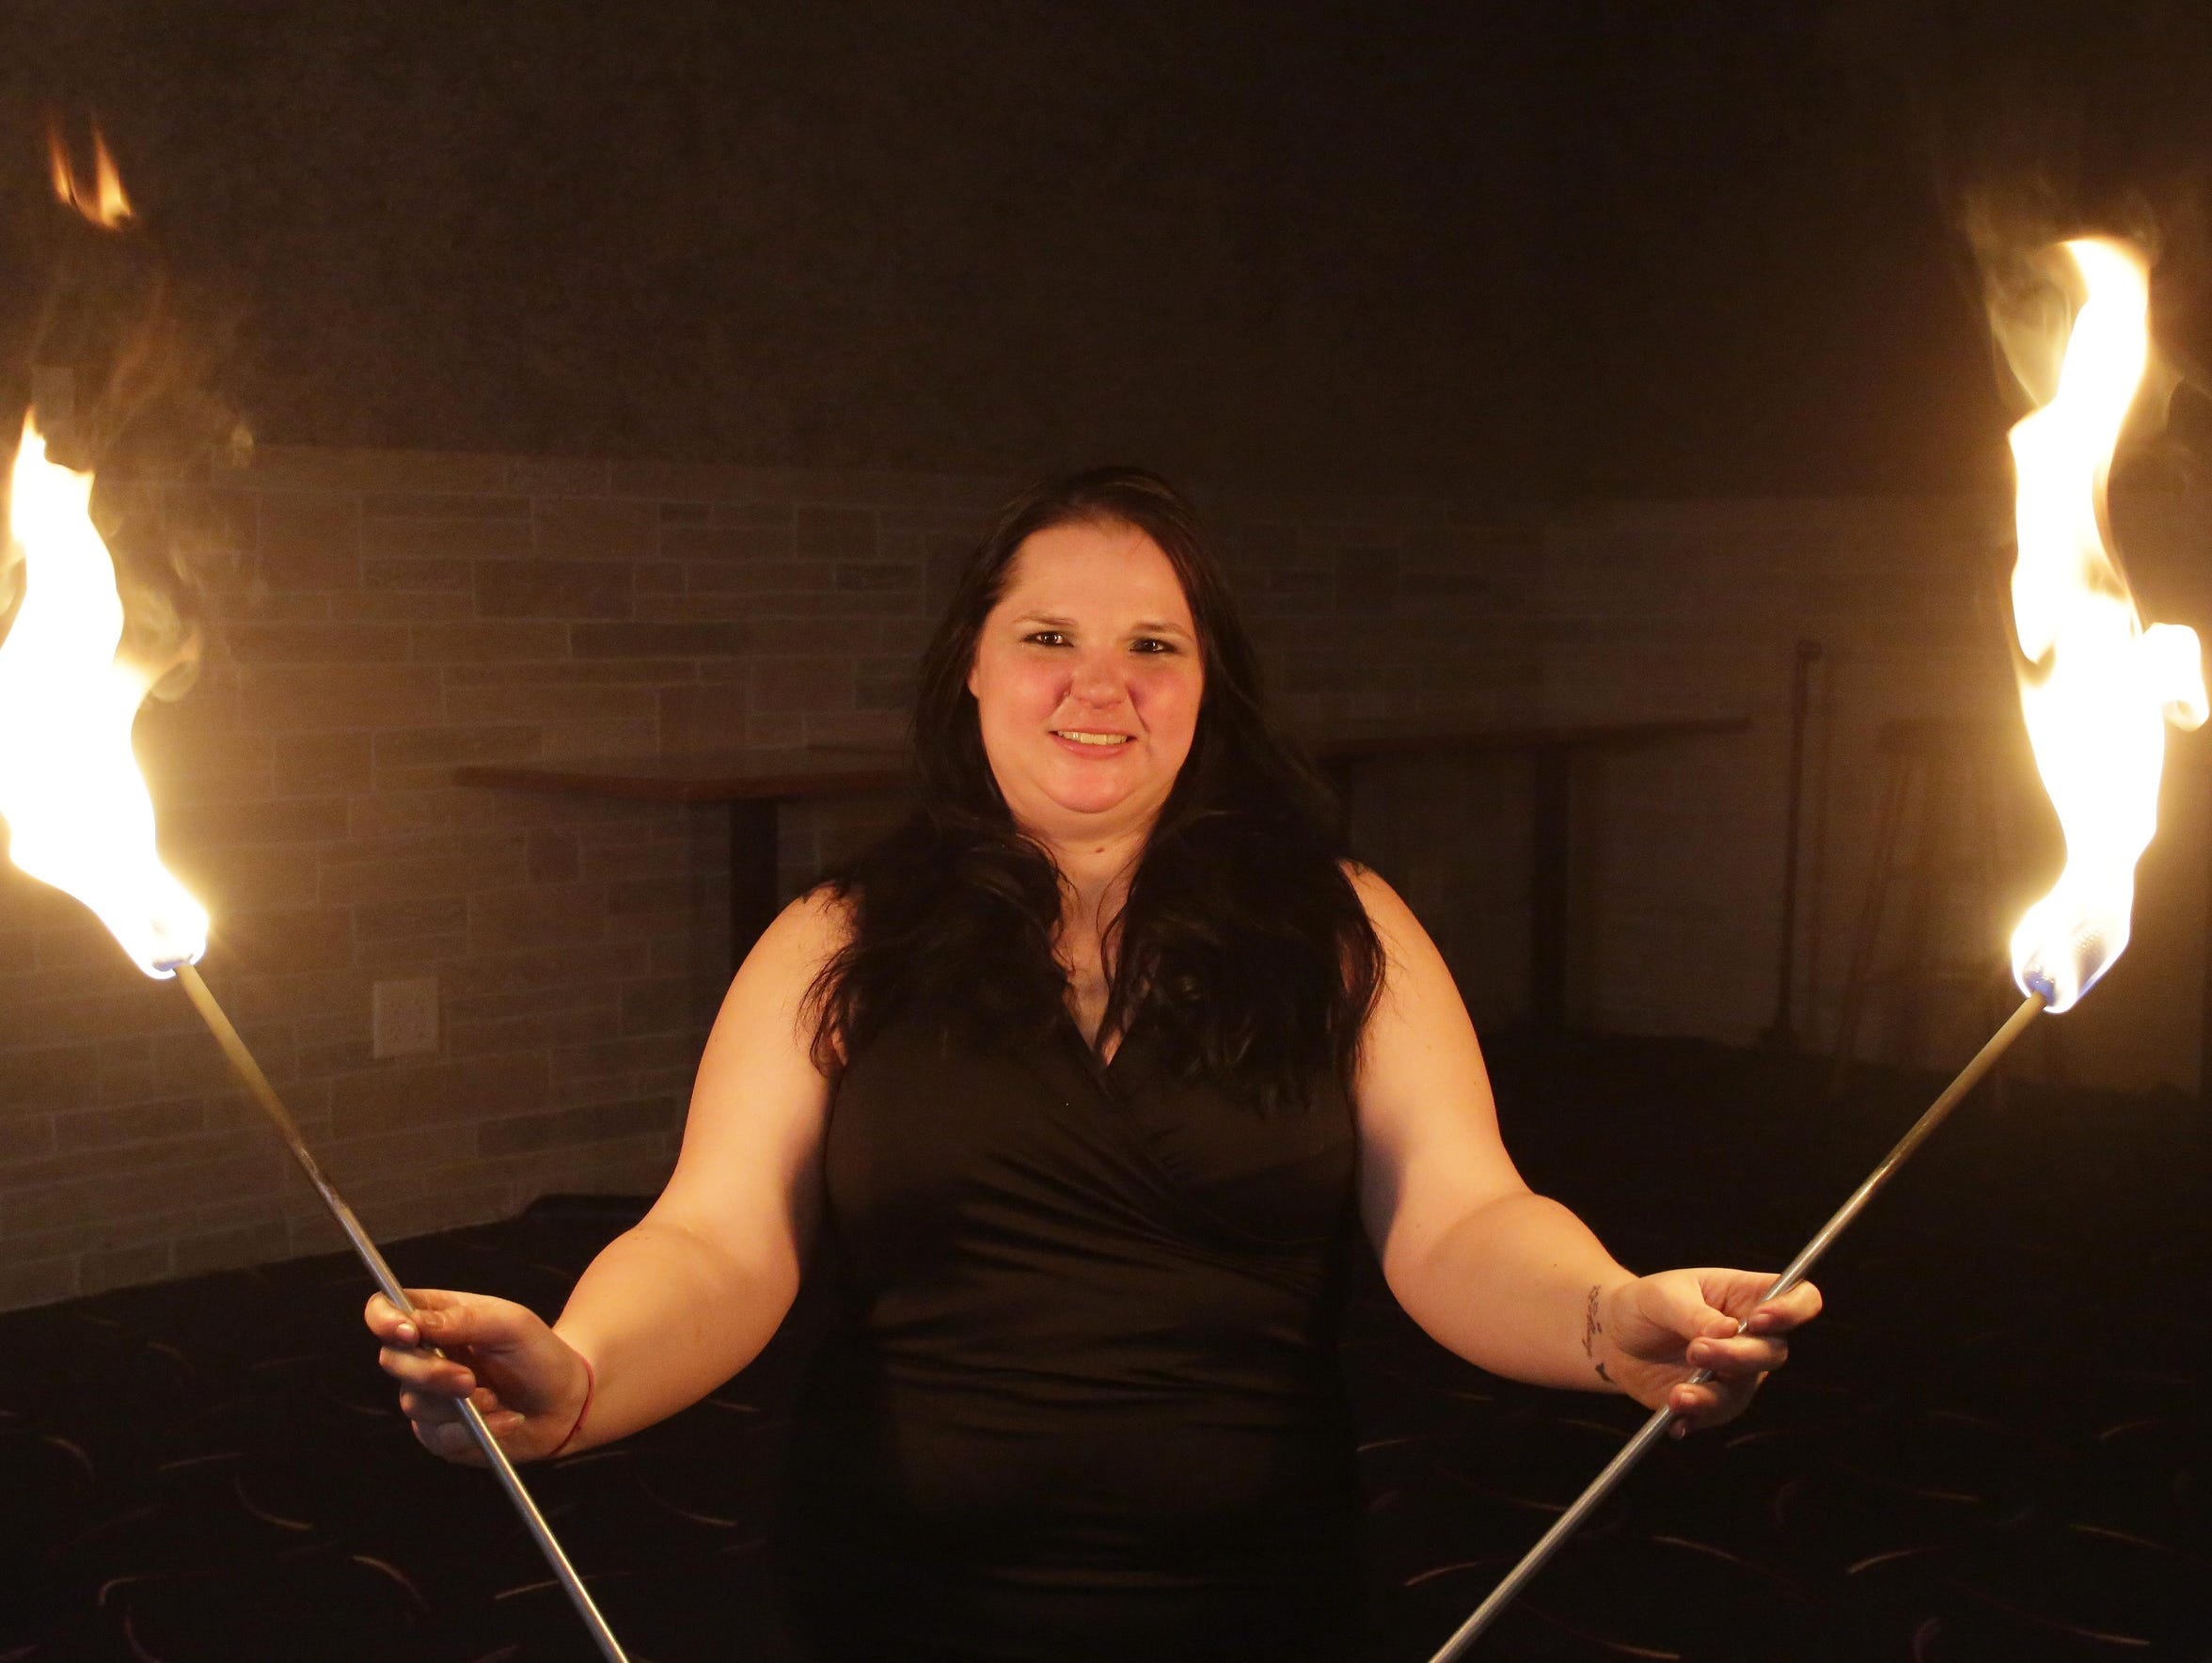 Valerie Ringwell of Sheboygan, poses with flaming fire batons, Thursday, April 12, 2018, in Sheboygan Falls, Wis. Ringwell is creating a calendar after being sexually assaulted with hopes to help others with assault recovery. She learned how to eat fire so she could conquer one of her fears.